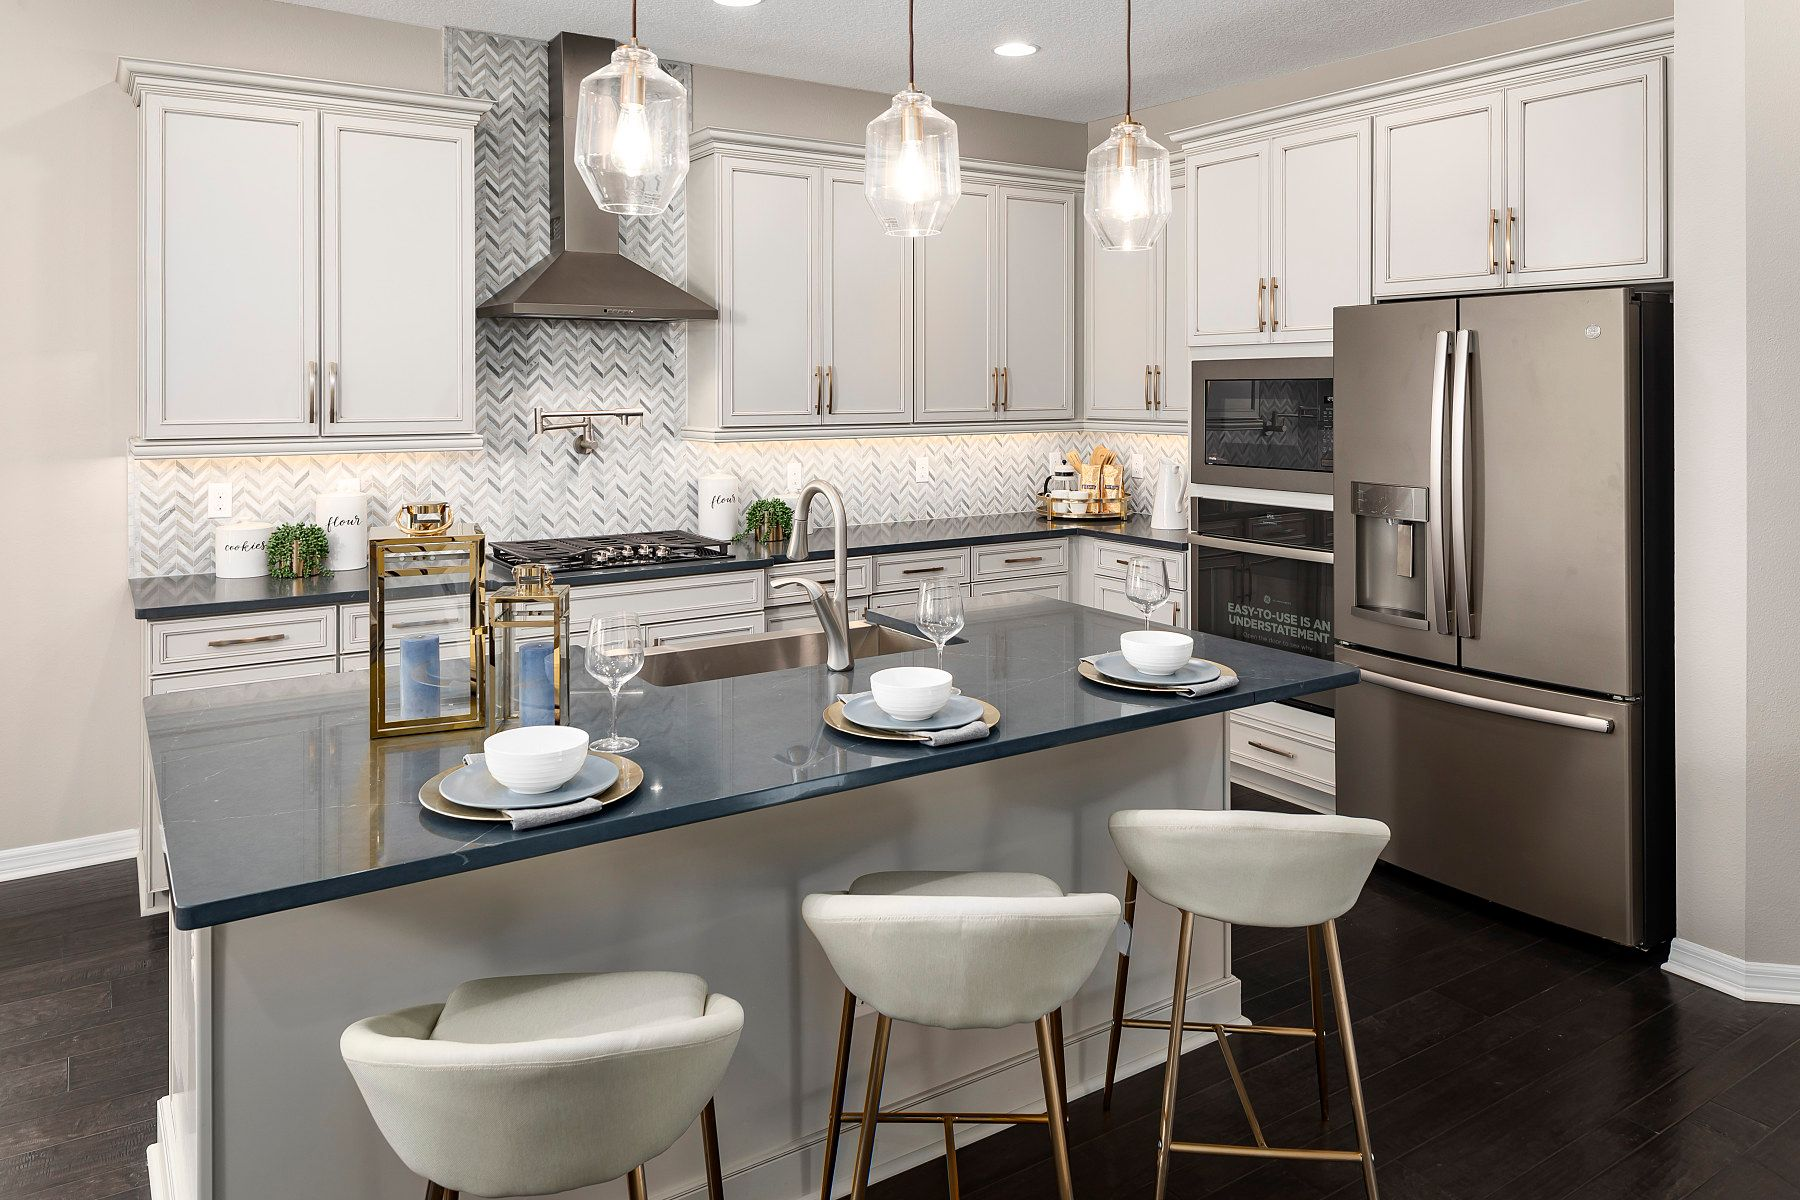 Kitchen featured in the Richmond By M/I Homes in Orlando, FL